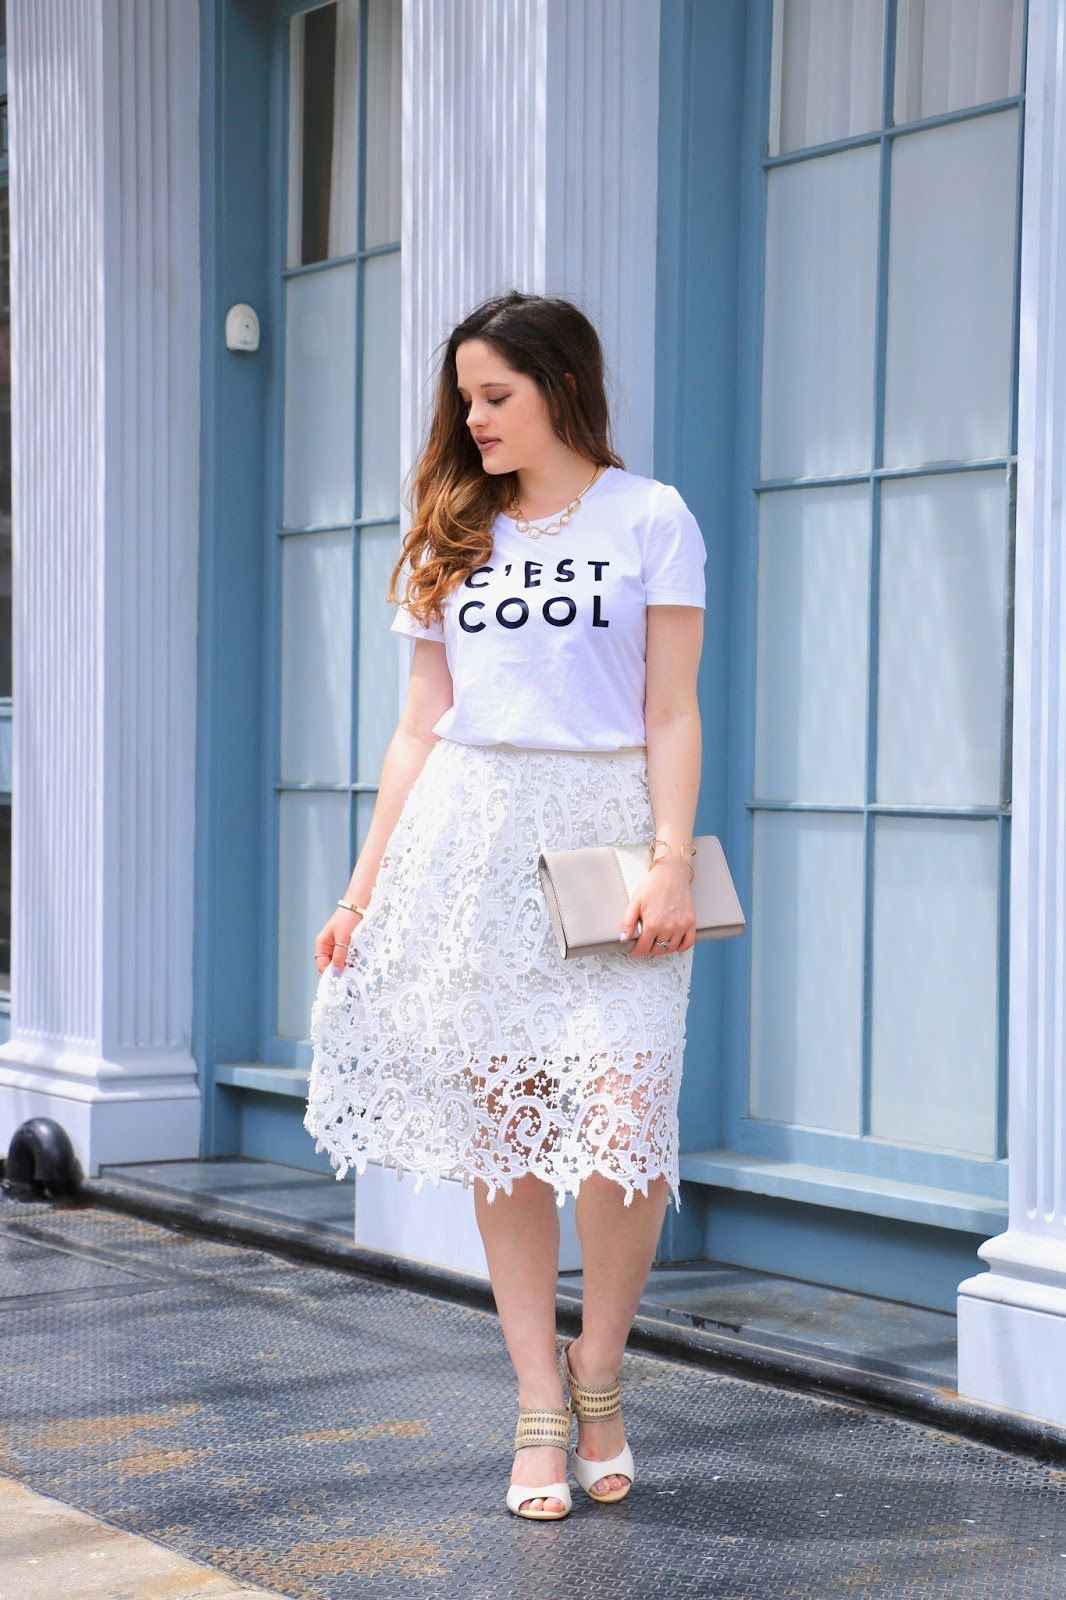 4b7eac6f5944 Graphic tee and lace pencil skirt. All white outfit. | Kats Fashion ...